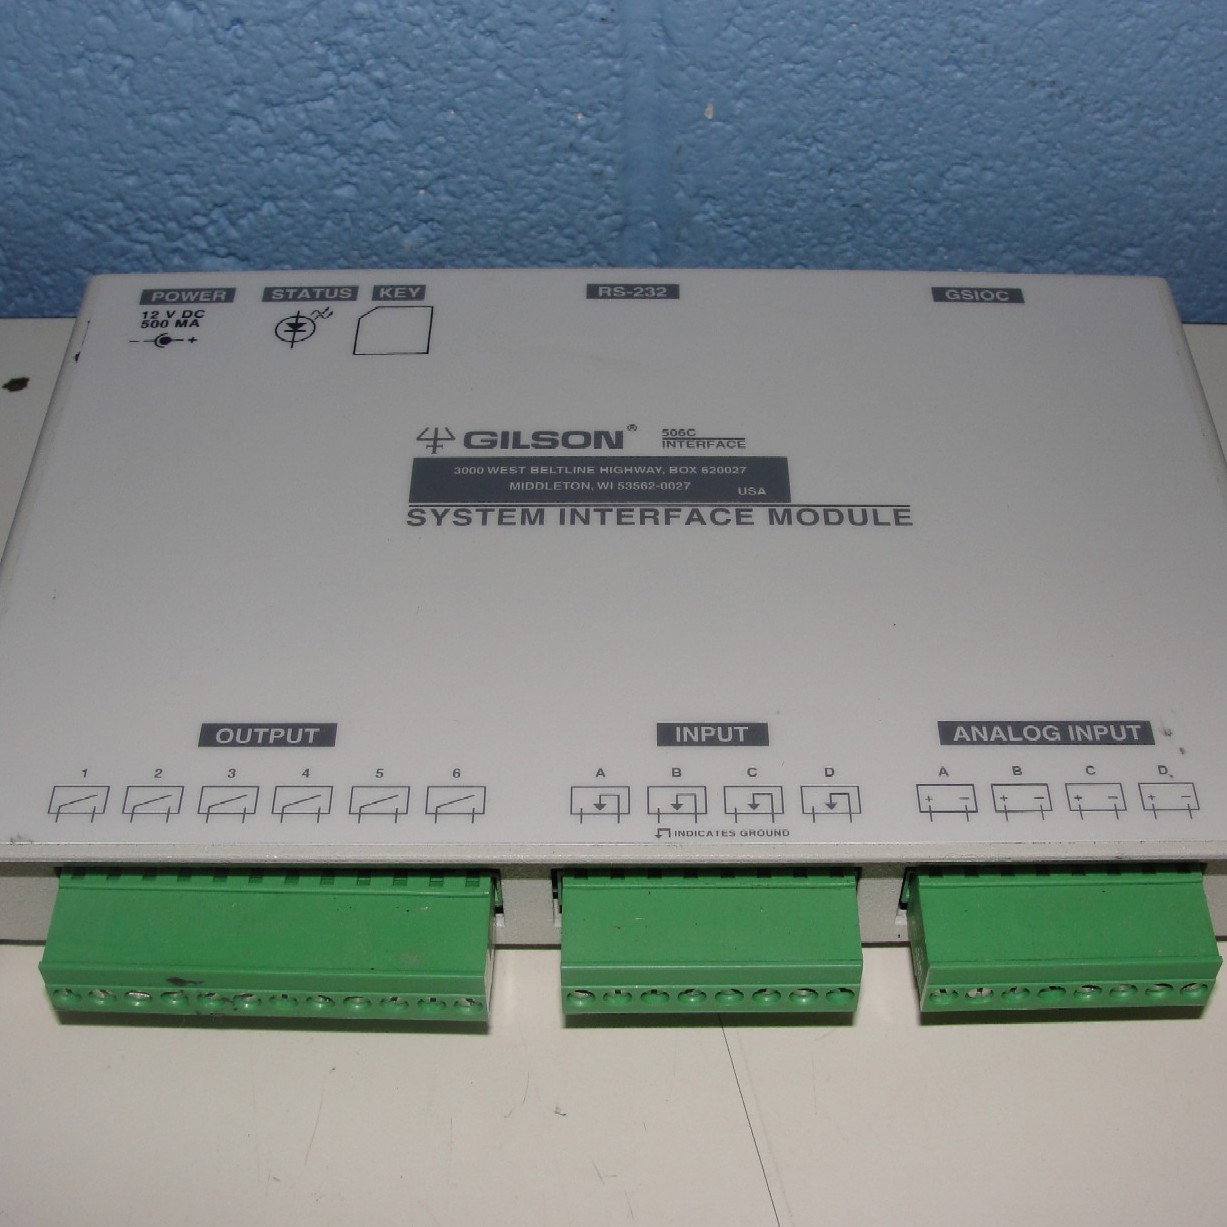 Gilson 506C System Interface Module Image